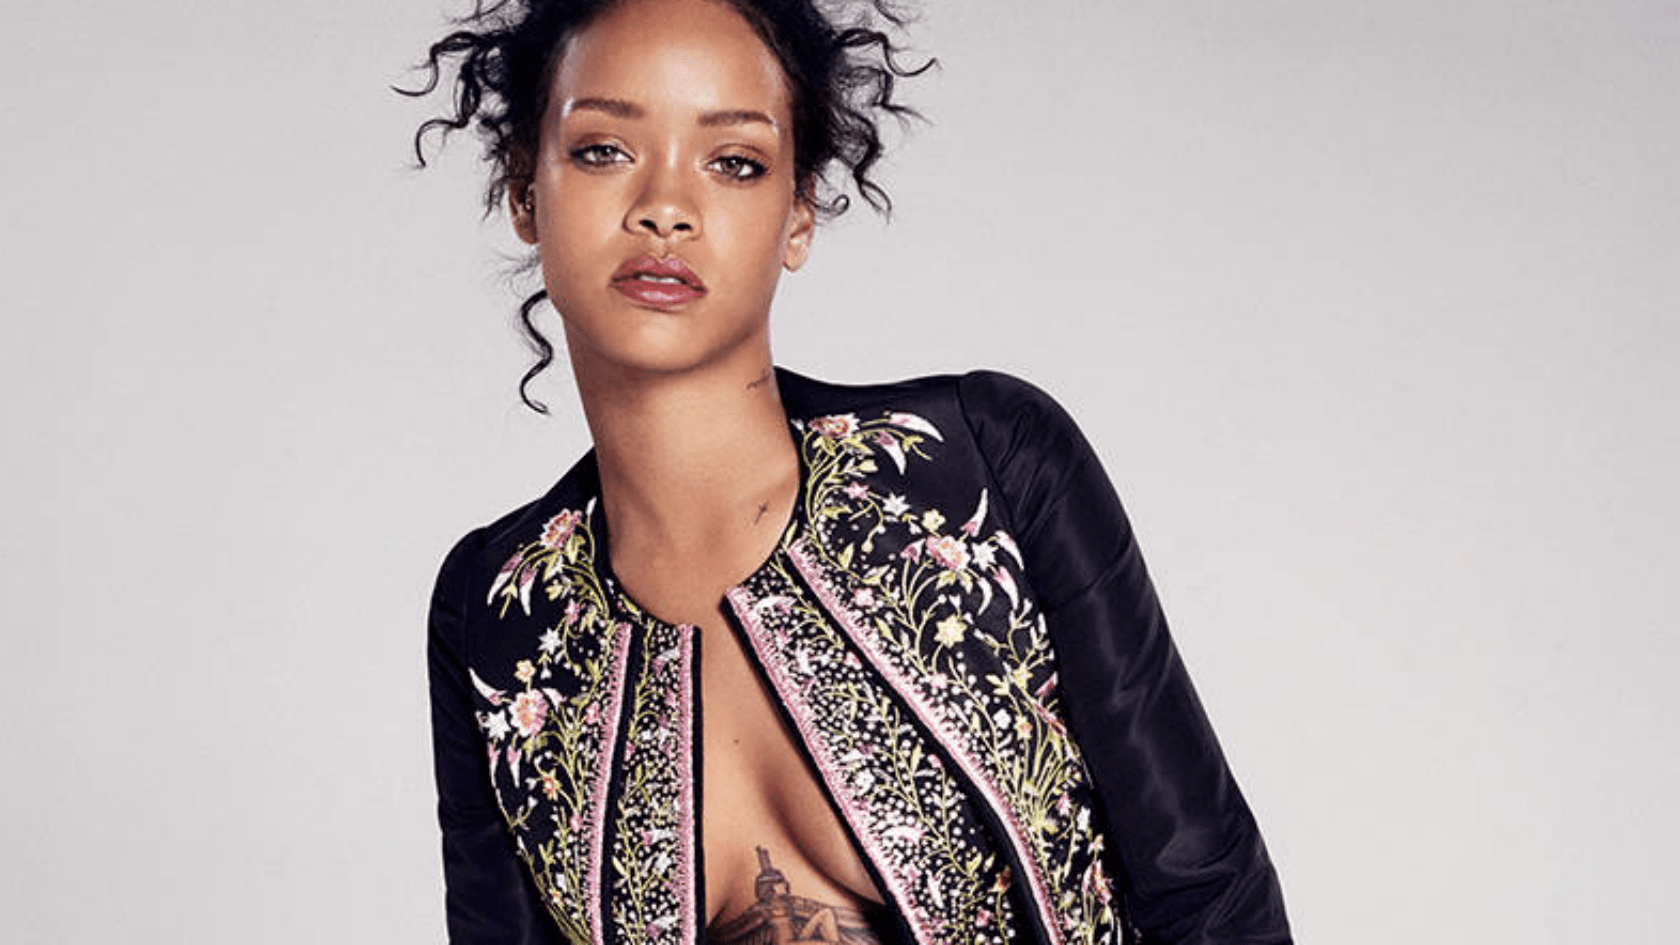 Jung Online Rihanna's Risque Cover Shoot For Elle Magazine